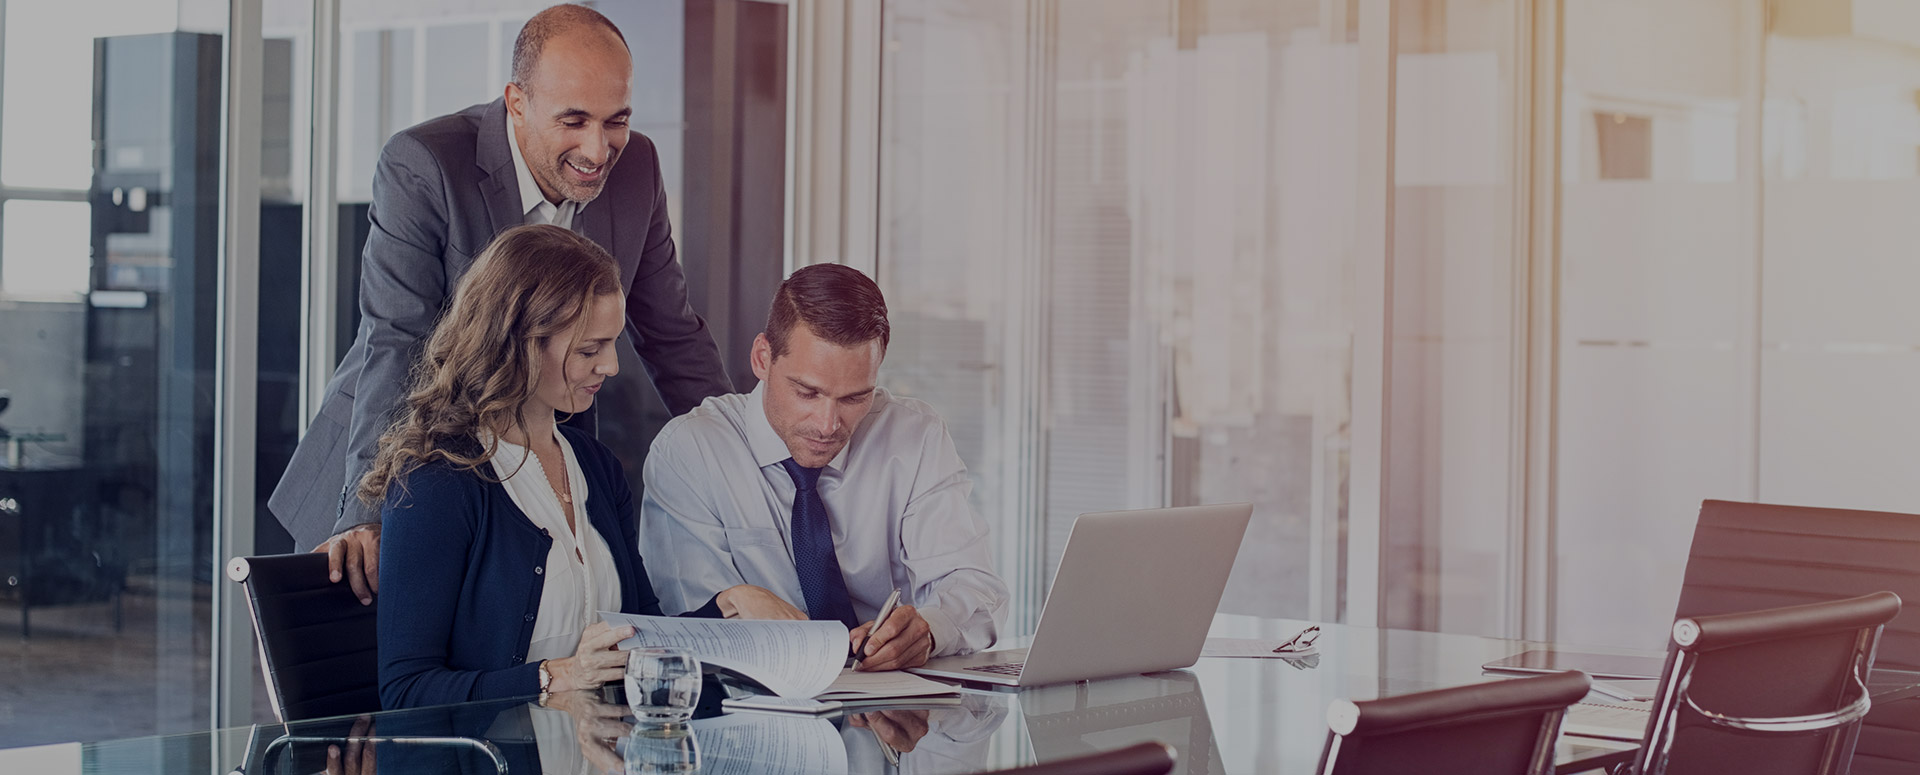 ALM Audit - Chartered Certified Accountants